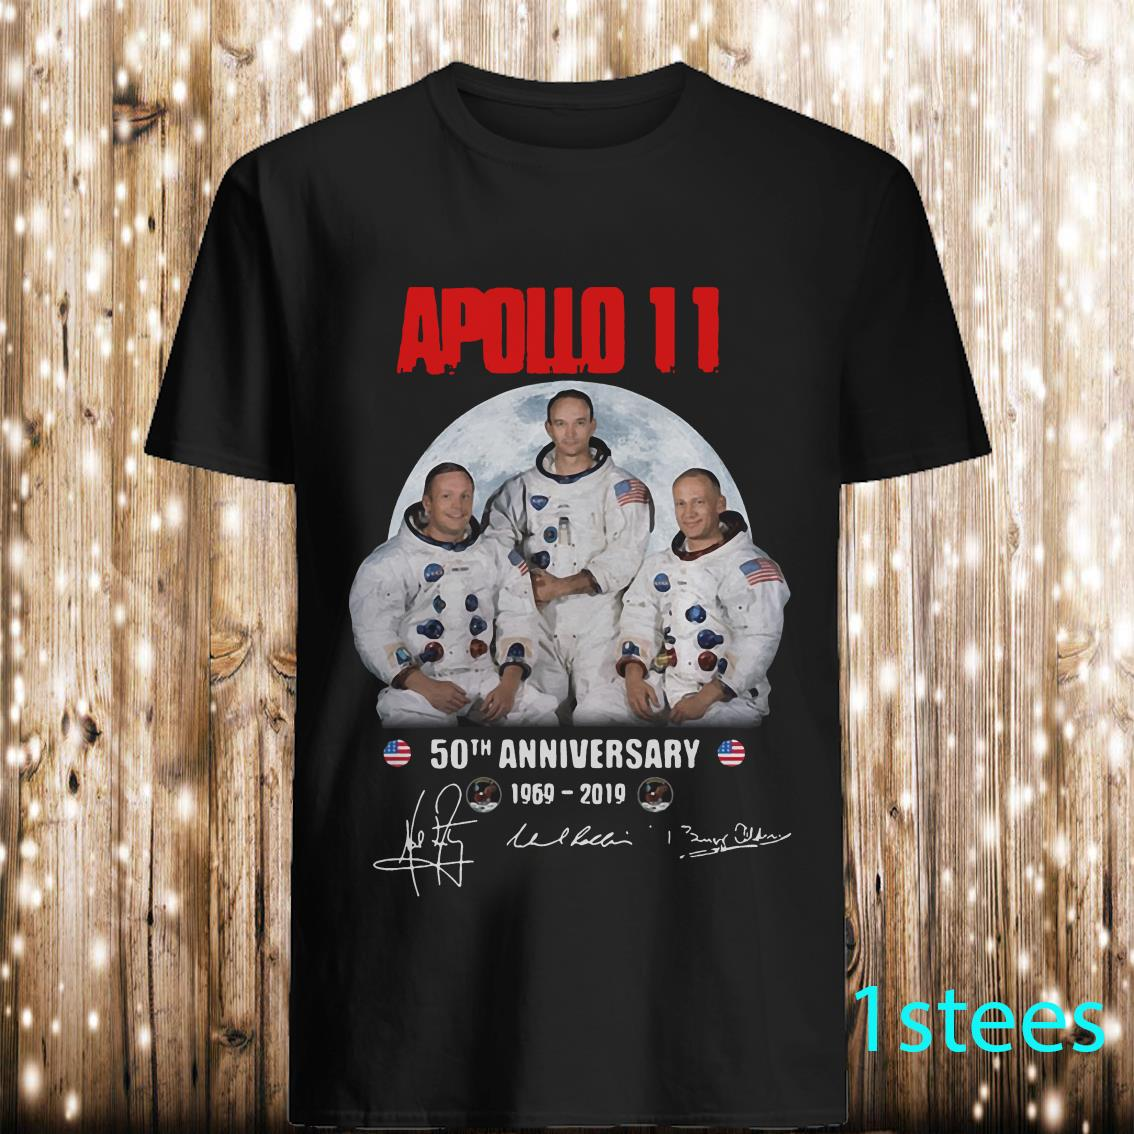 Apollo 11 50th Anniversary Walking on The Moon Shirt